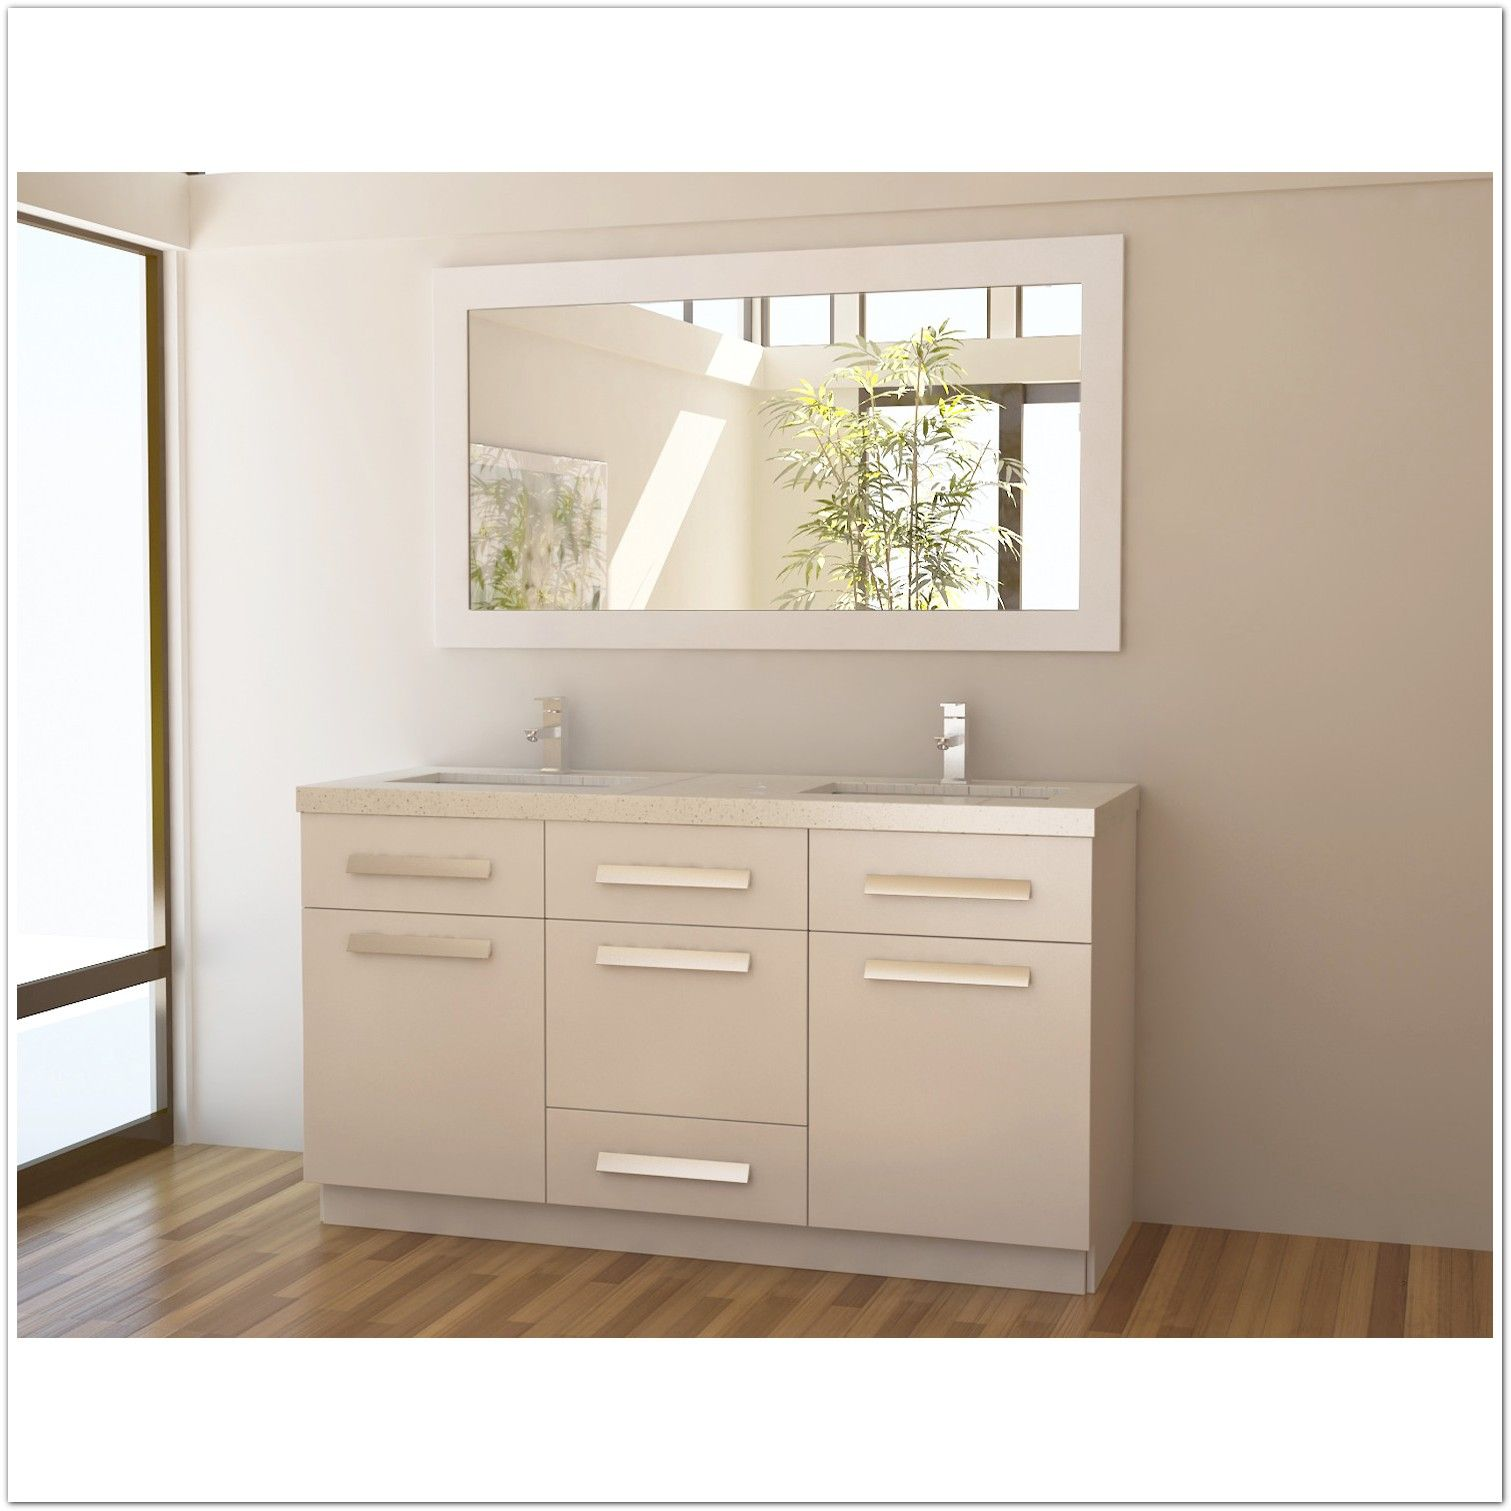 48 Inch Bathroom Vanity Double Sink | Best Reference Furniture ...